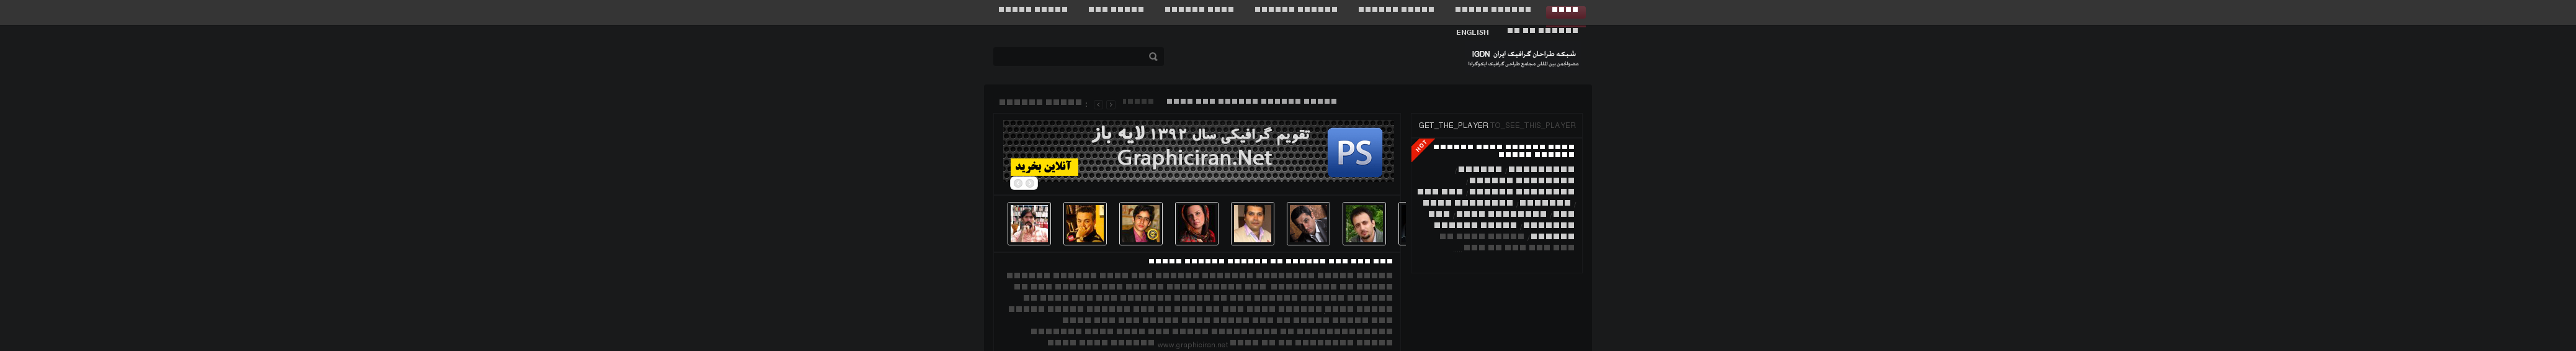 graphiciran.net